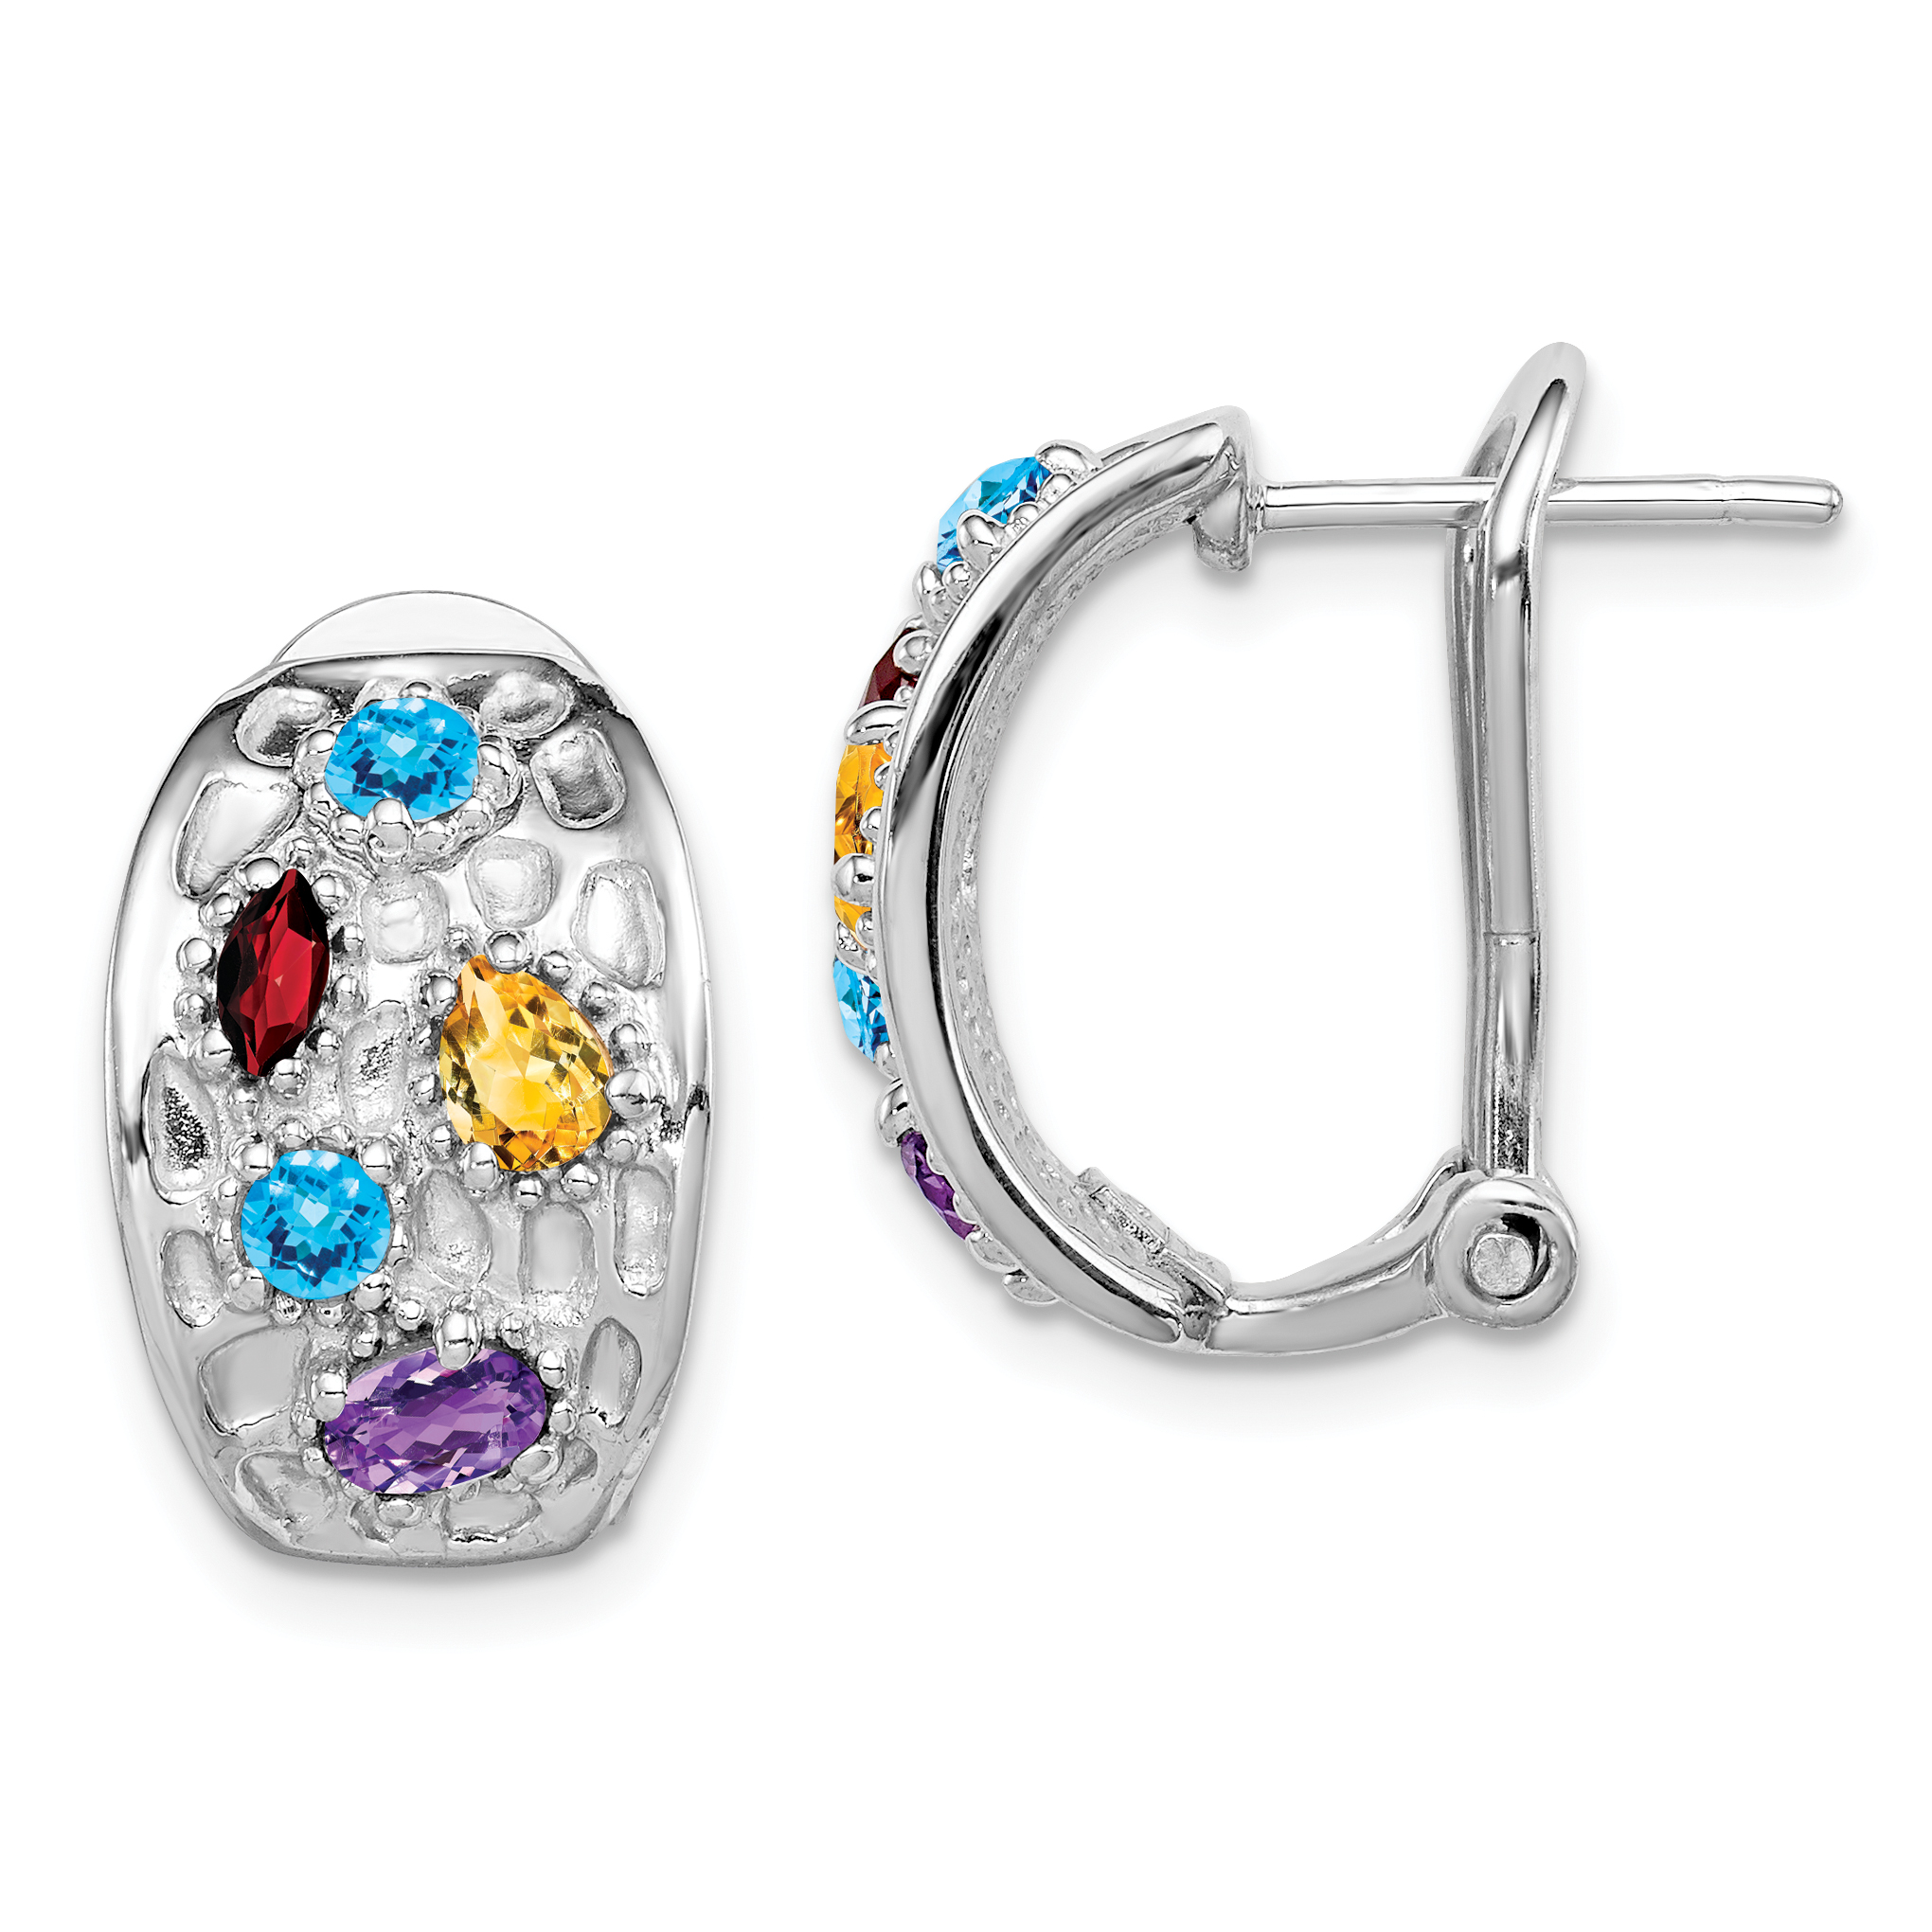 Sterling Silver Rhodium-plated with Garnet Blue Topaz /& Citrine Post Earrings